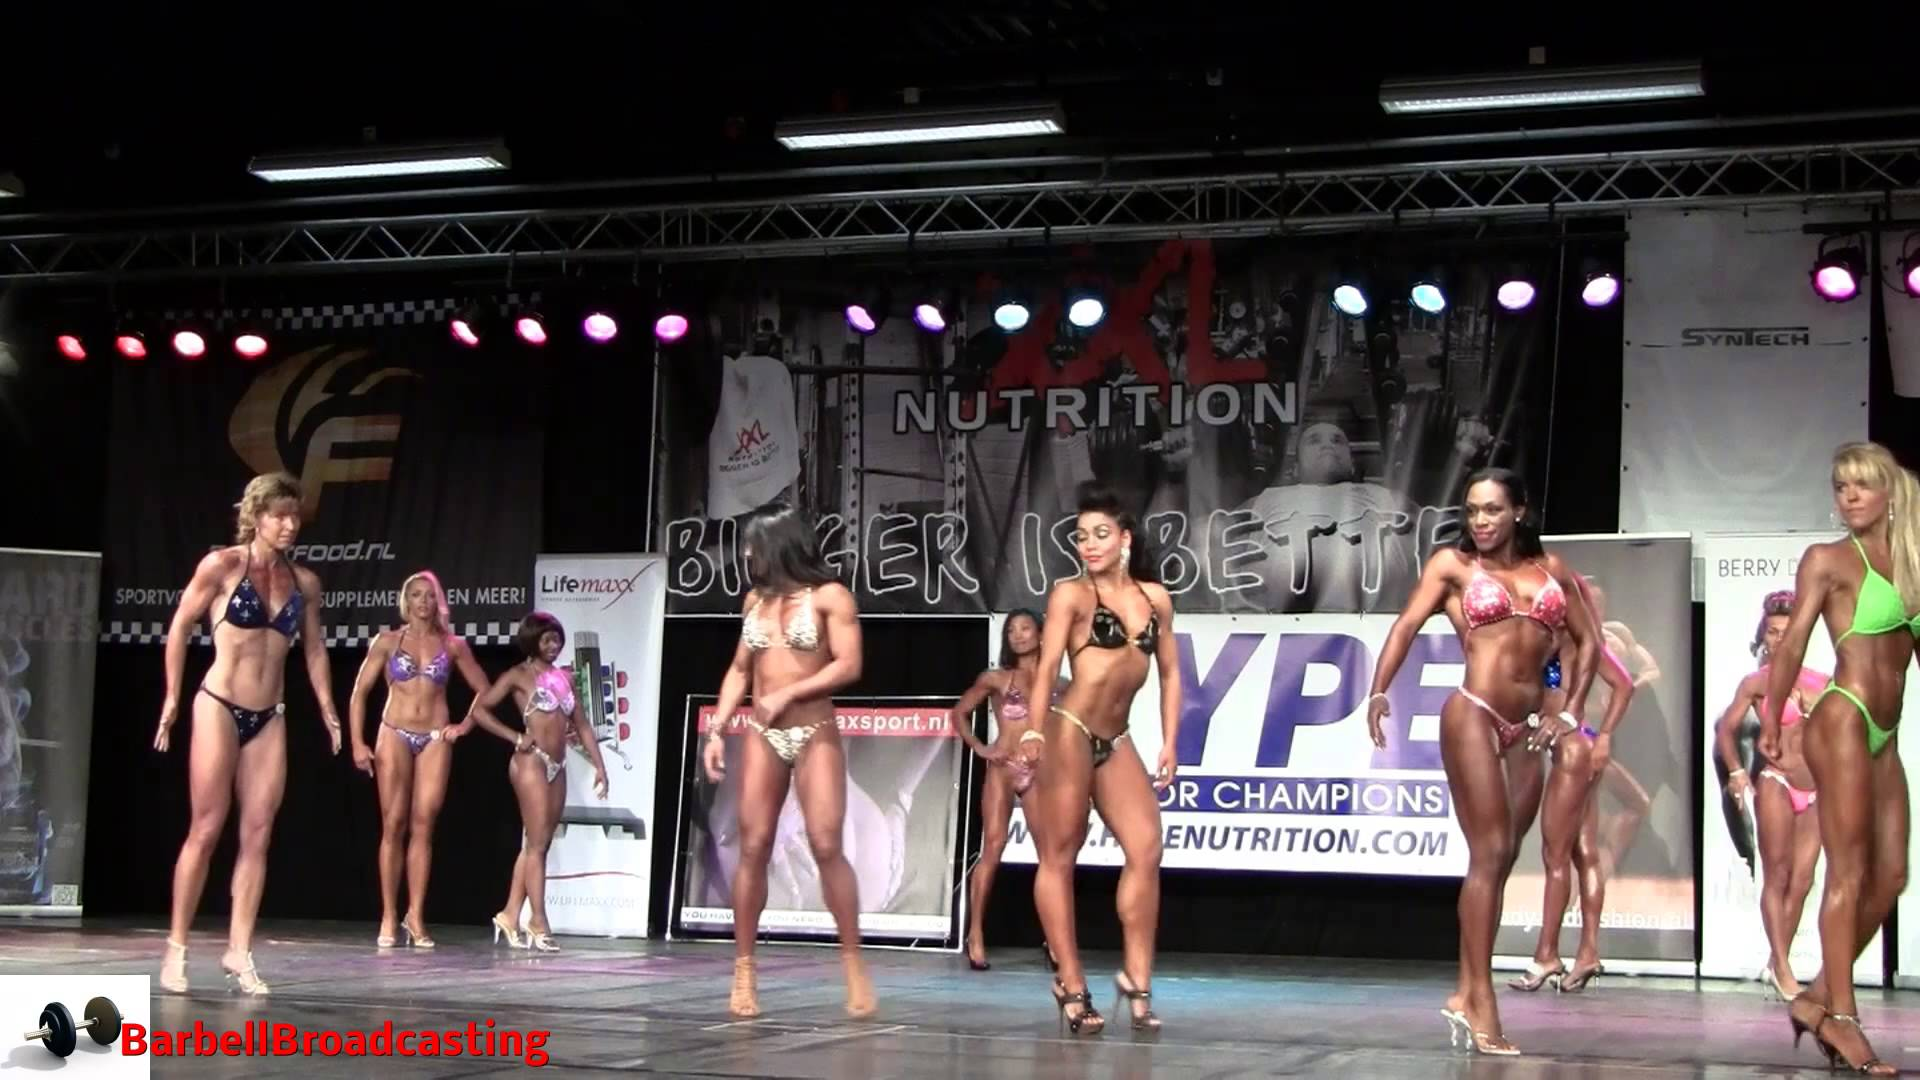 Flexcup 2012 – BodyFitness